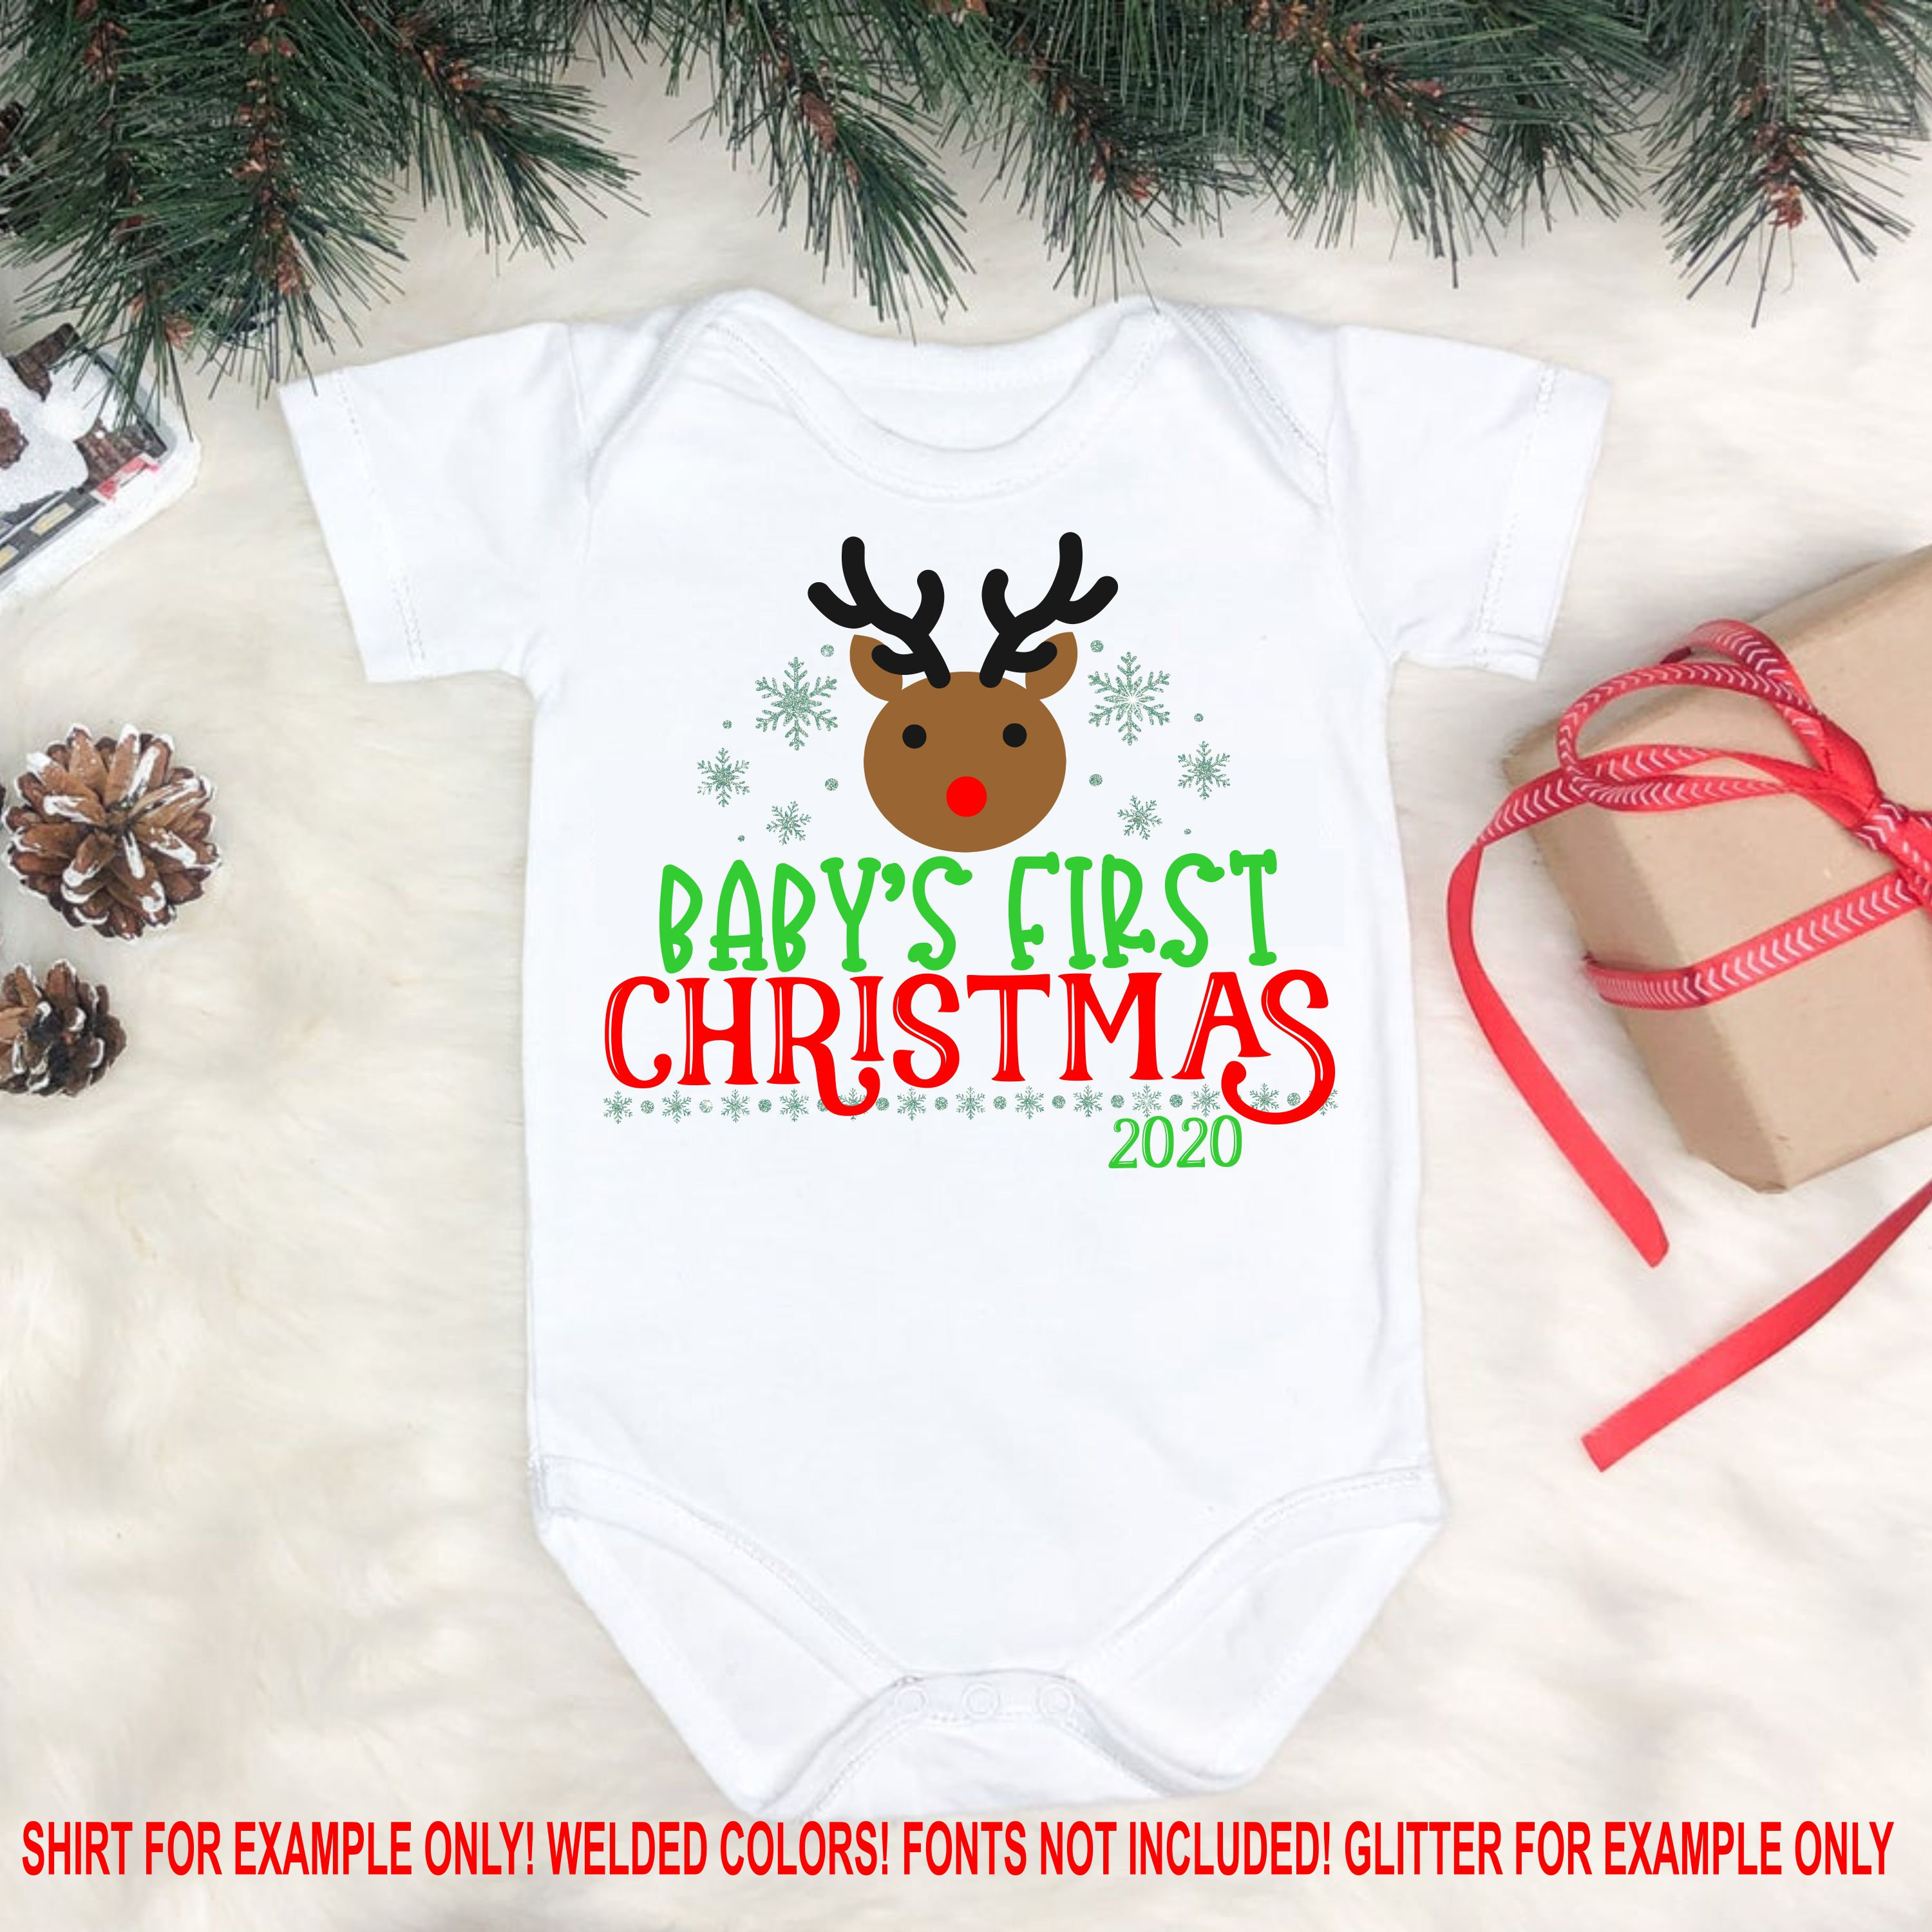 Babys-first-christmas-svgchristmas-svg-baby-svgsnowflake-svgchristmas-time-svgwinter-svg-cut-files-winter-svg-design-5f787d2c